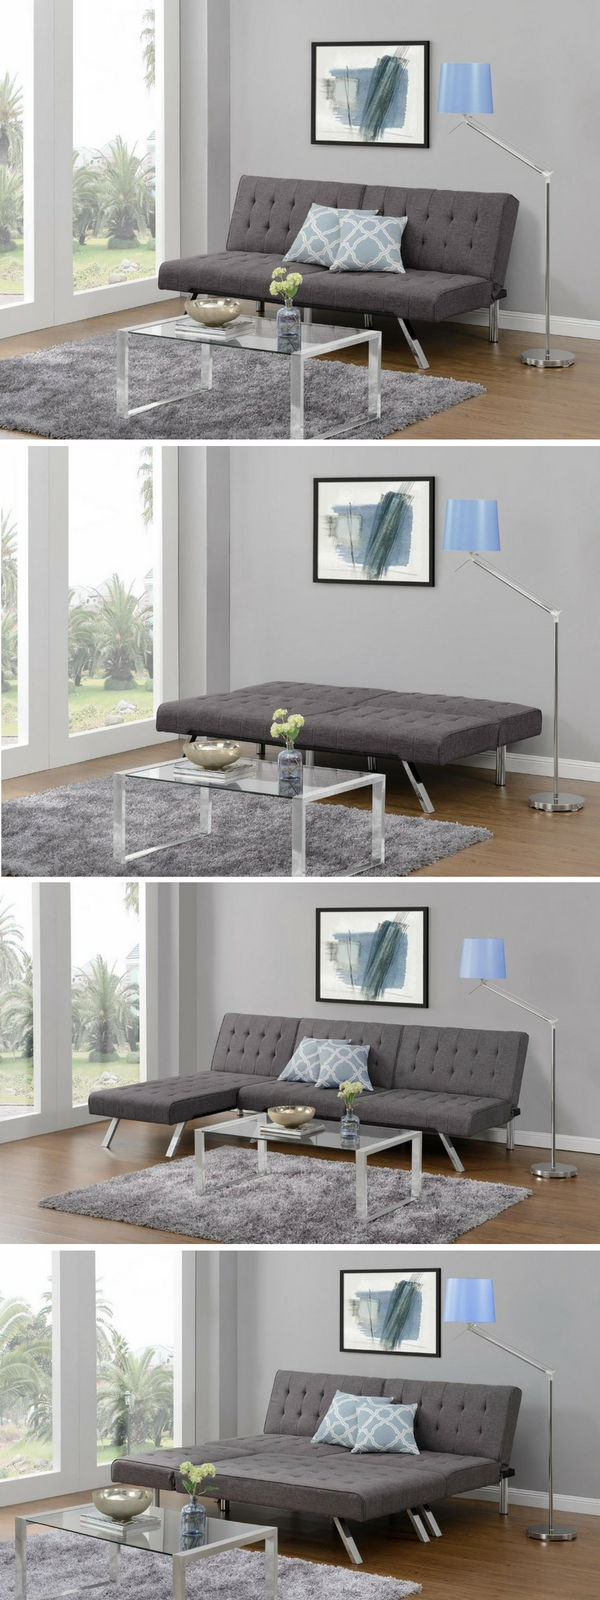 Top 10 Best Sleeper Sofas & Sofa Beds ...industrystandarddesign.com